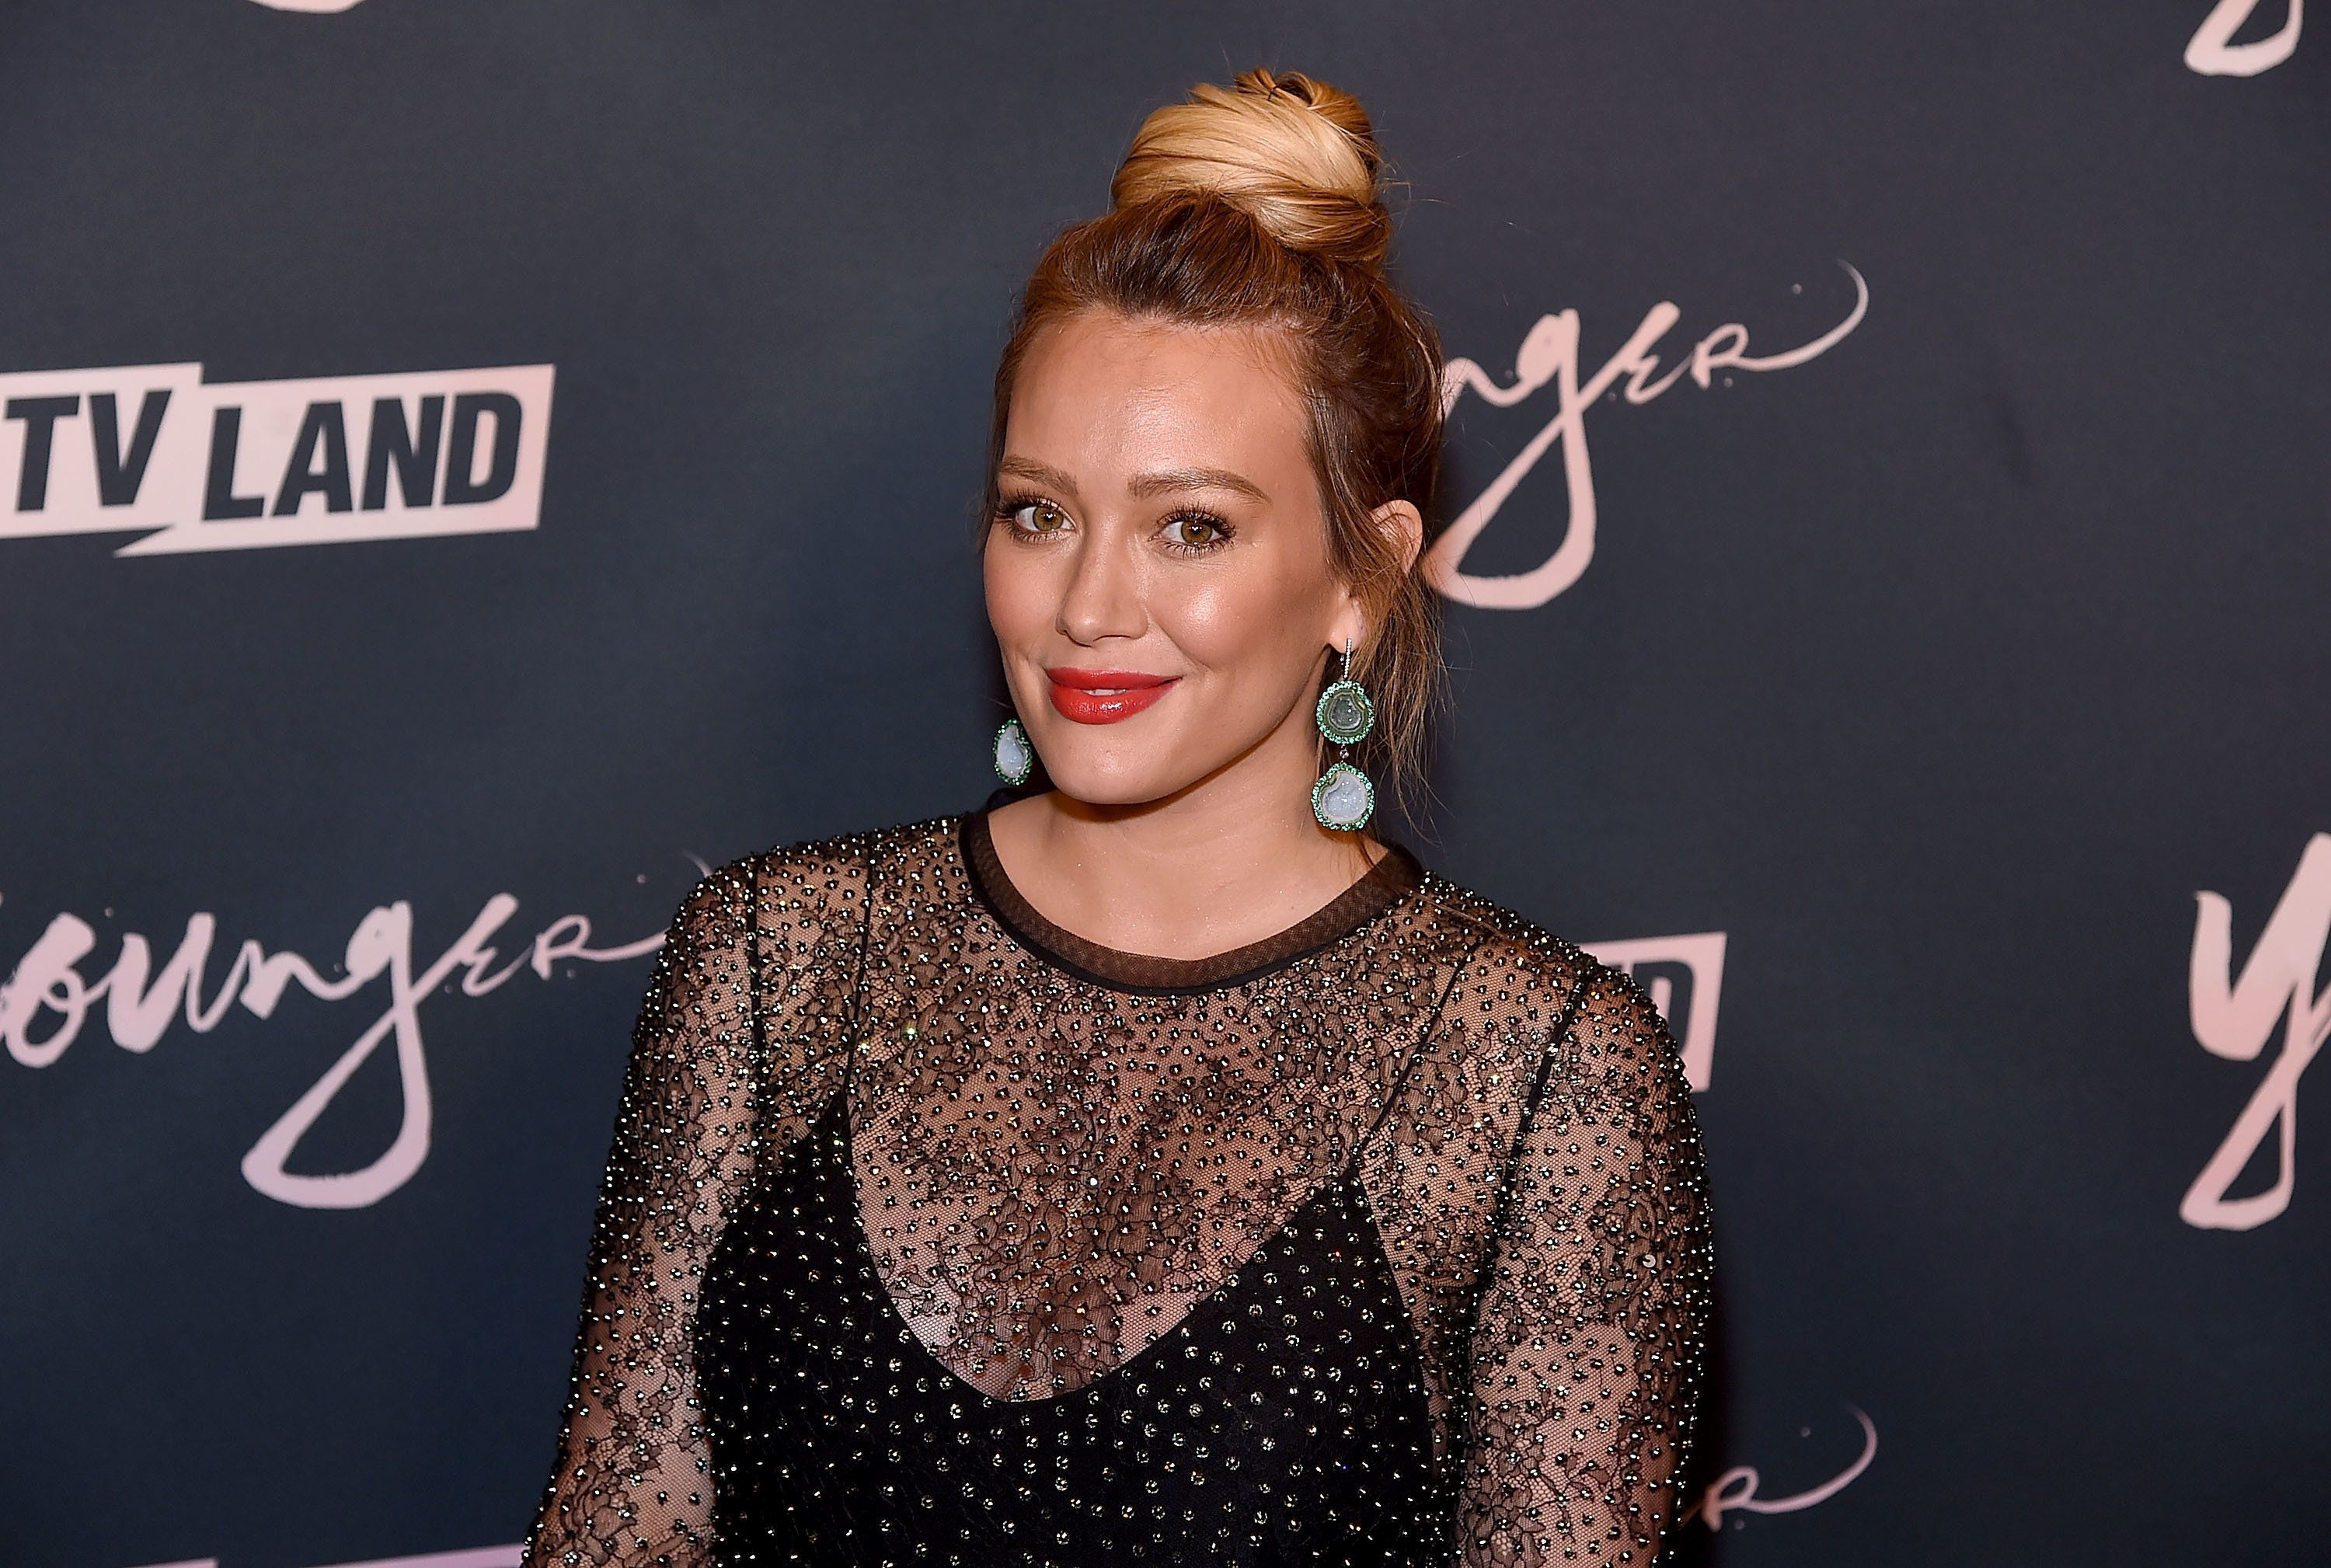 BROOKLYN, NY - JUNE 04:  Hilary Duff attends the 'Younger' Season 5 Premiere Party at Cecconi's Dumbo on June 4, 2018 in Brooklyn, New York.  (Photo by Jamie McCarthy/Getty Images)